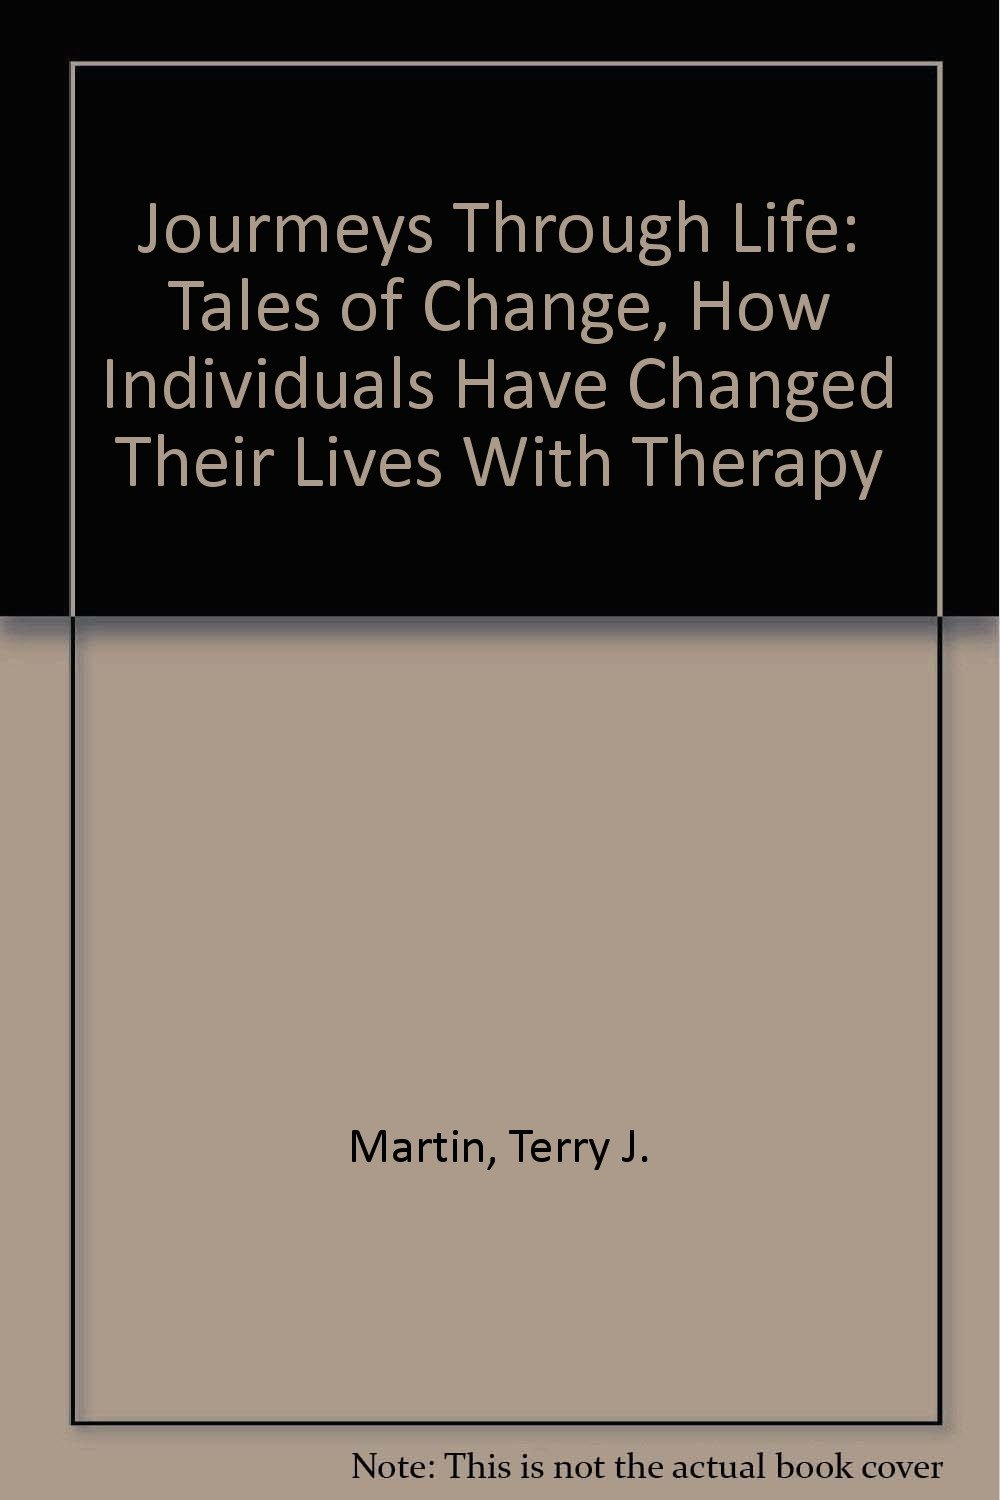 Journeys Through Life: Tales of Change, How Individuals Have Changed Their Lives With Therapy Text fb2 ebook